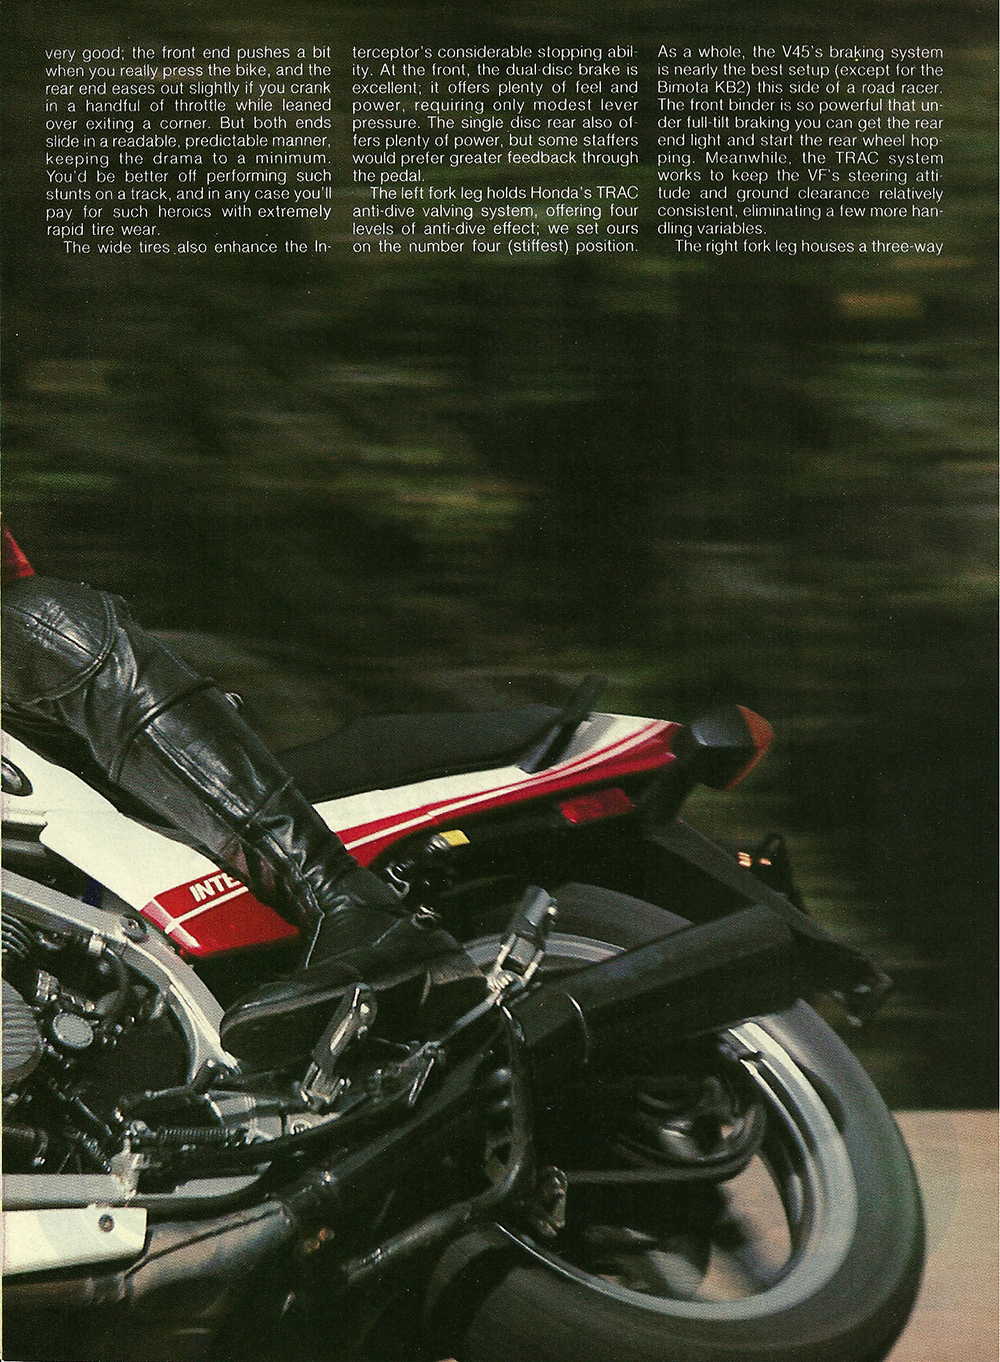 1983 Honda V45 Interceptor road test 04.jpg